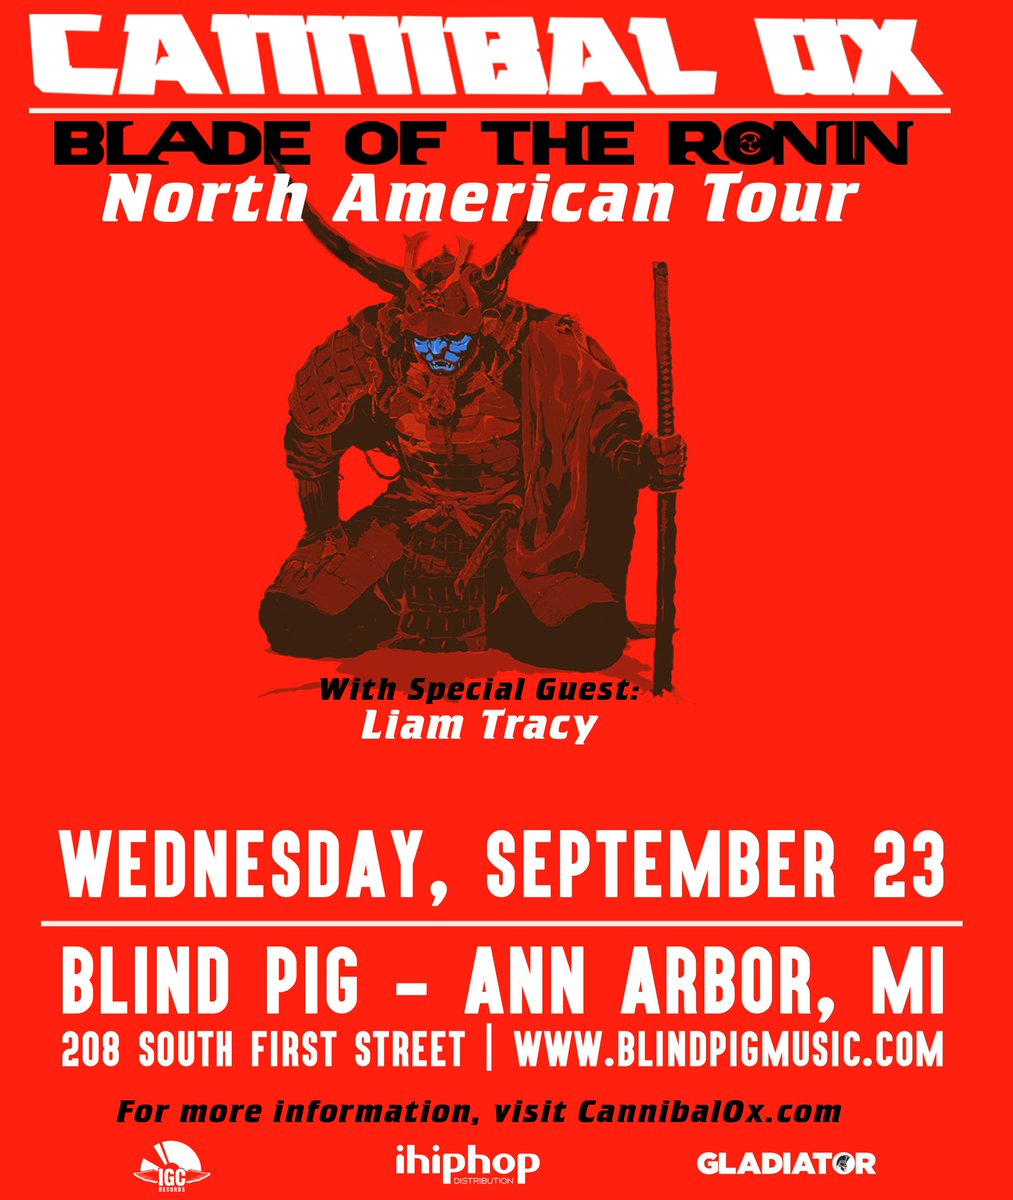 Can't stop, won't stop - @Cannibalox  wsg @LiamTracyMusic 9/23 at The Blind Pig!!  #realhiphop http://t.co/0jsLajPNJh http://t.co/b9eprnFC8r